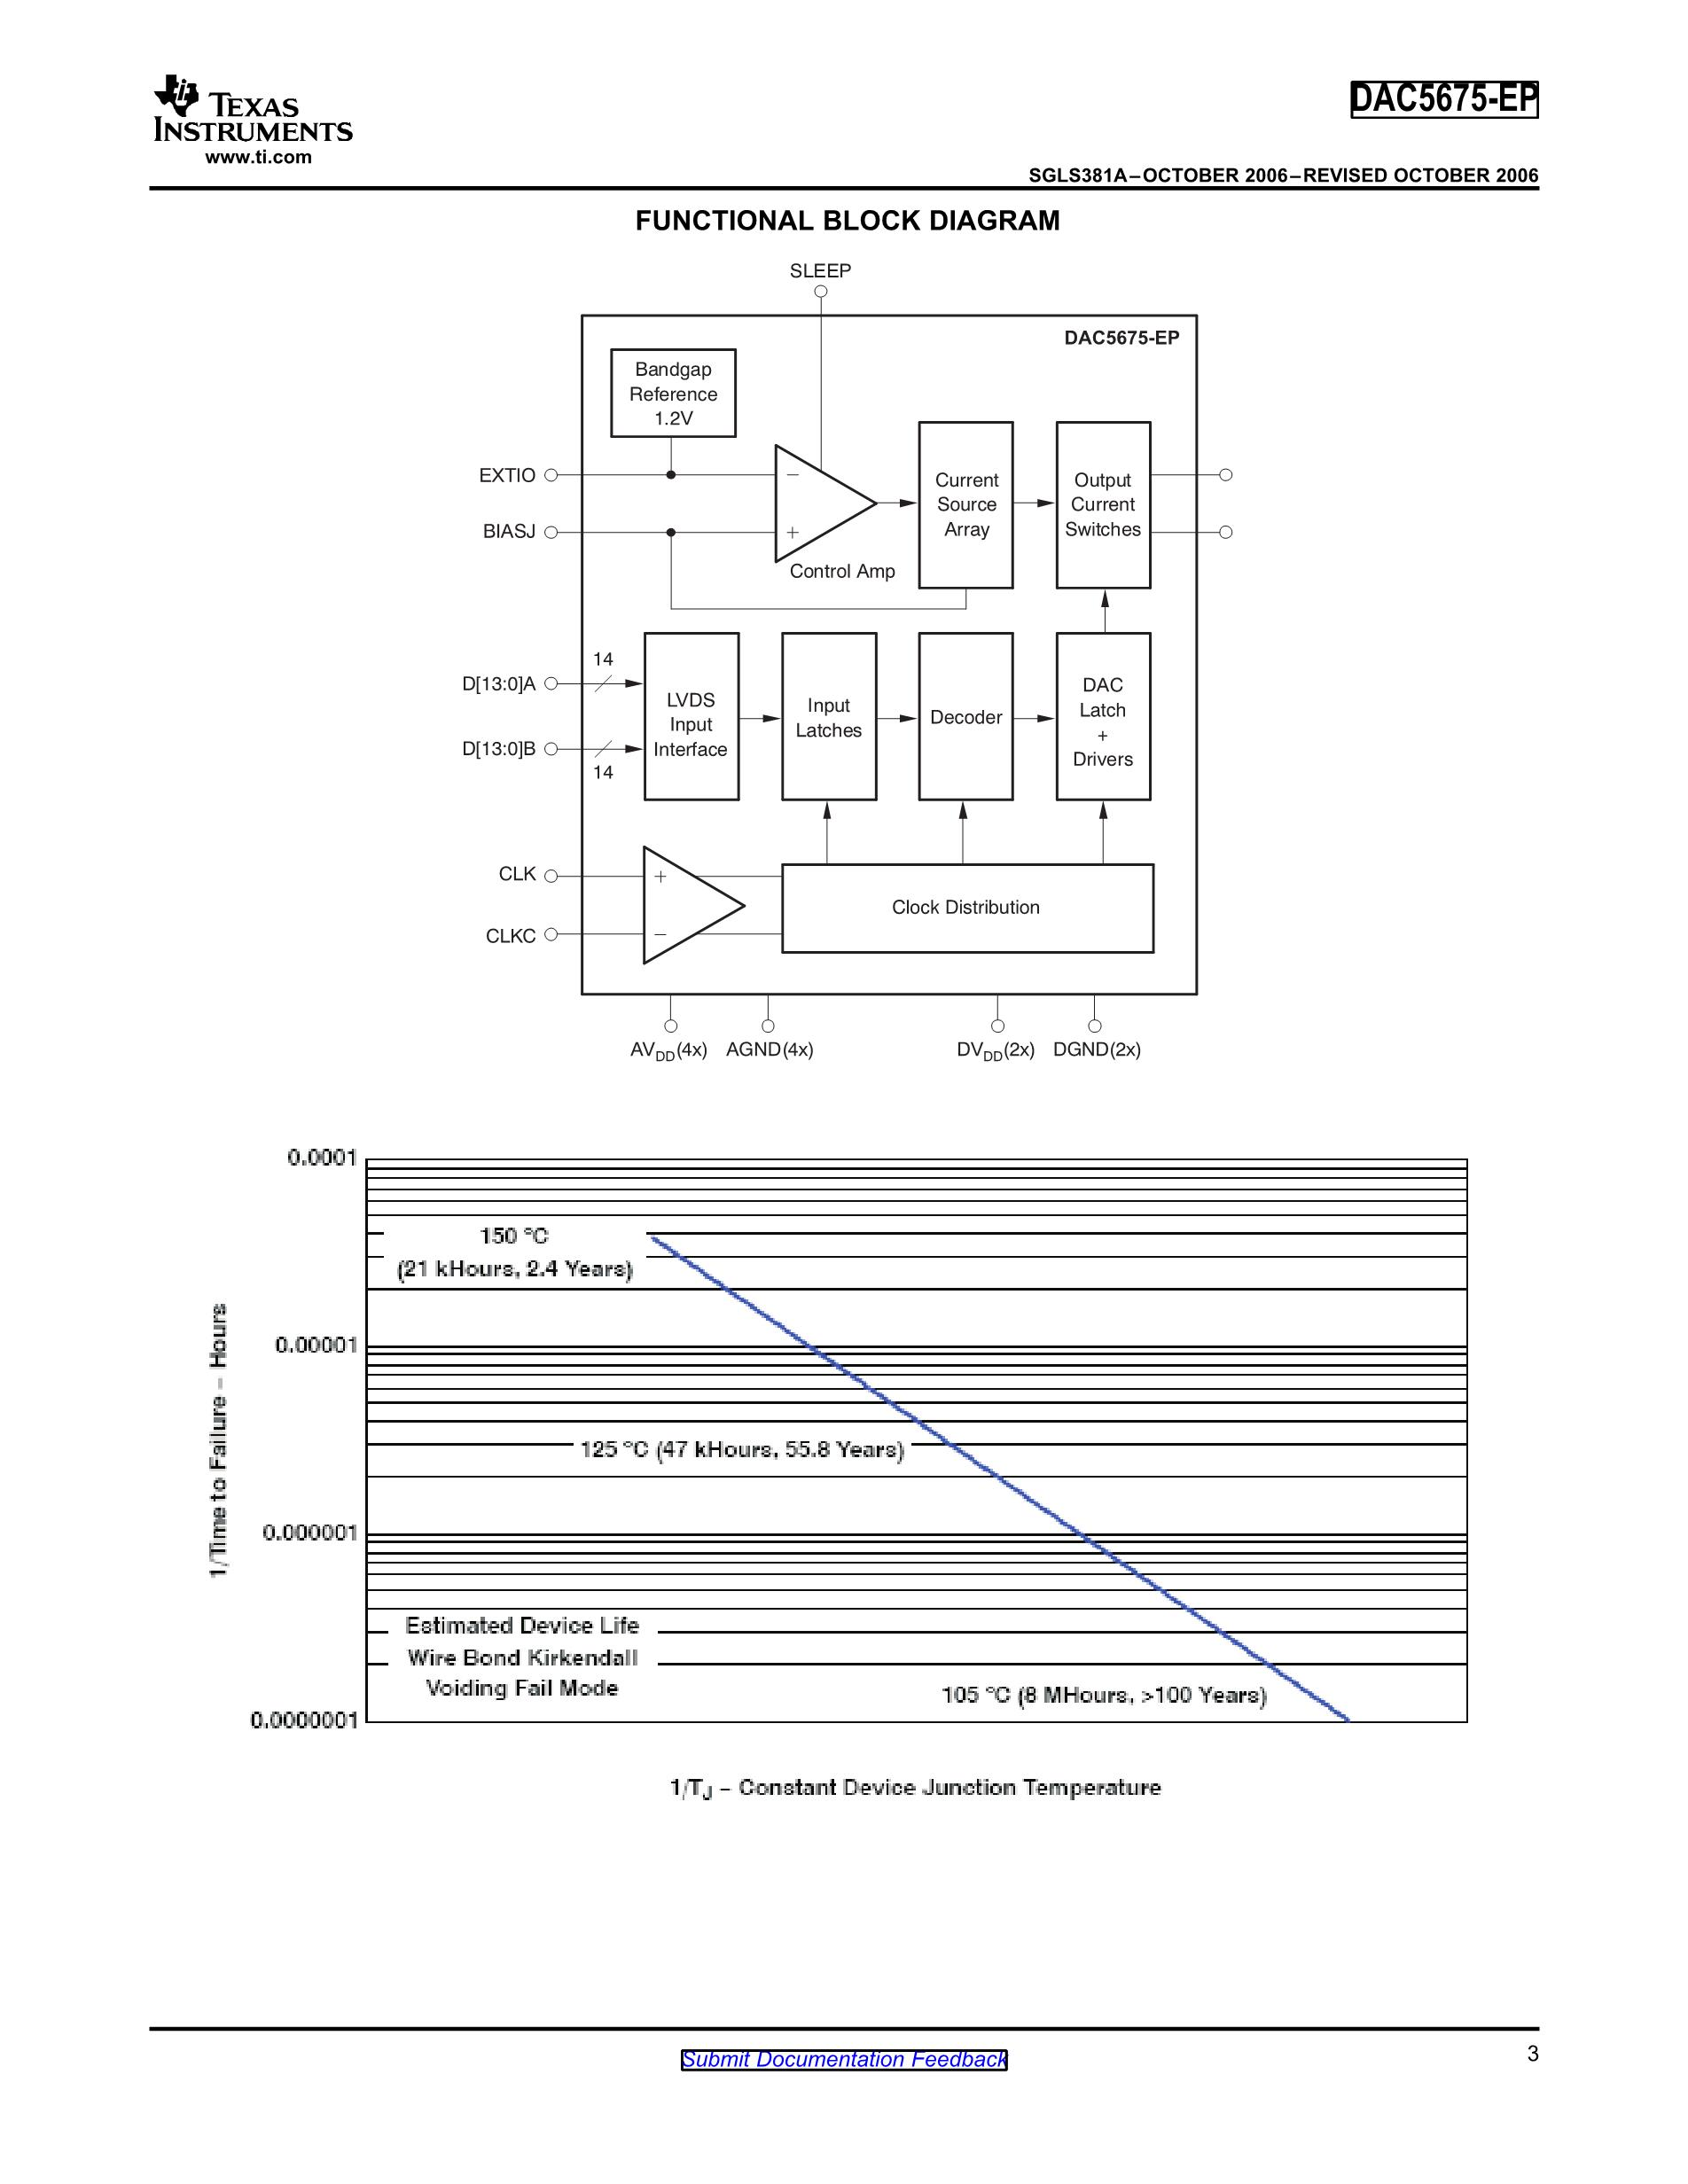 DAC5662MPFBREP's pdf picture 3